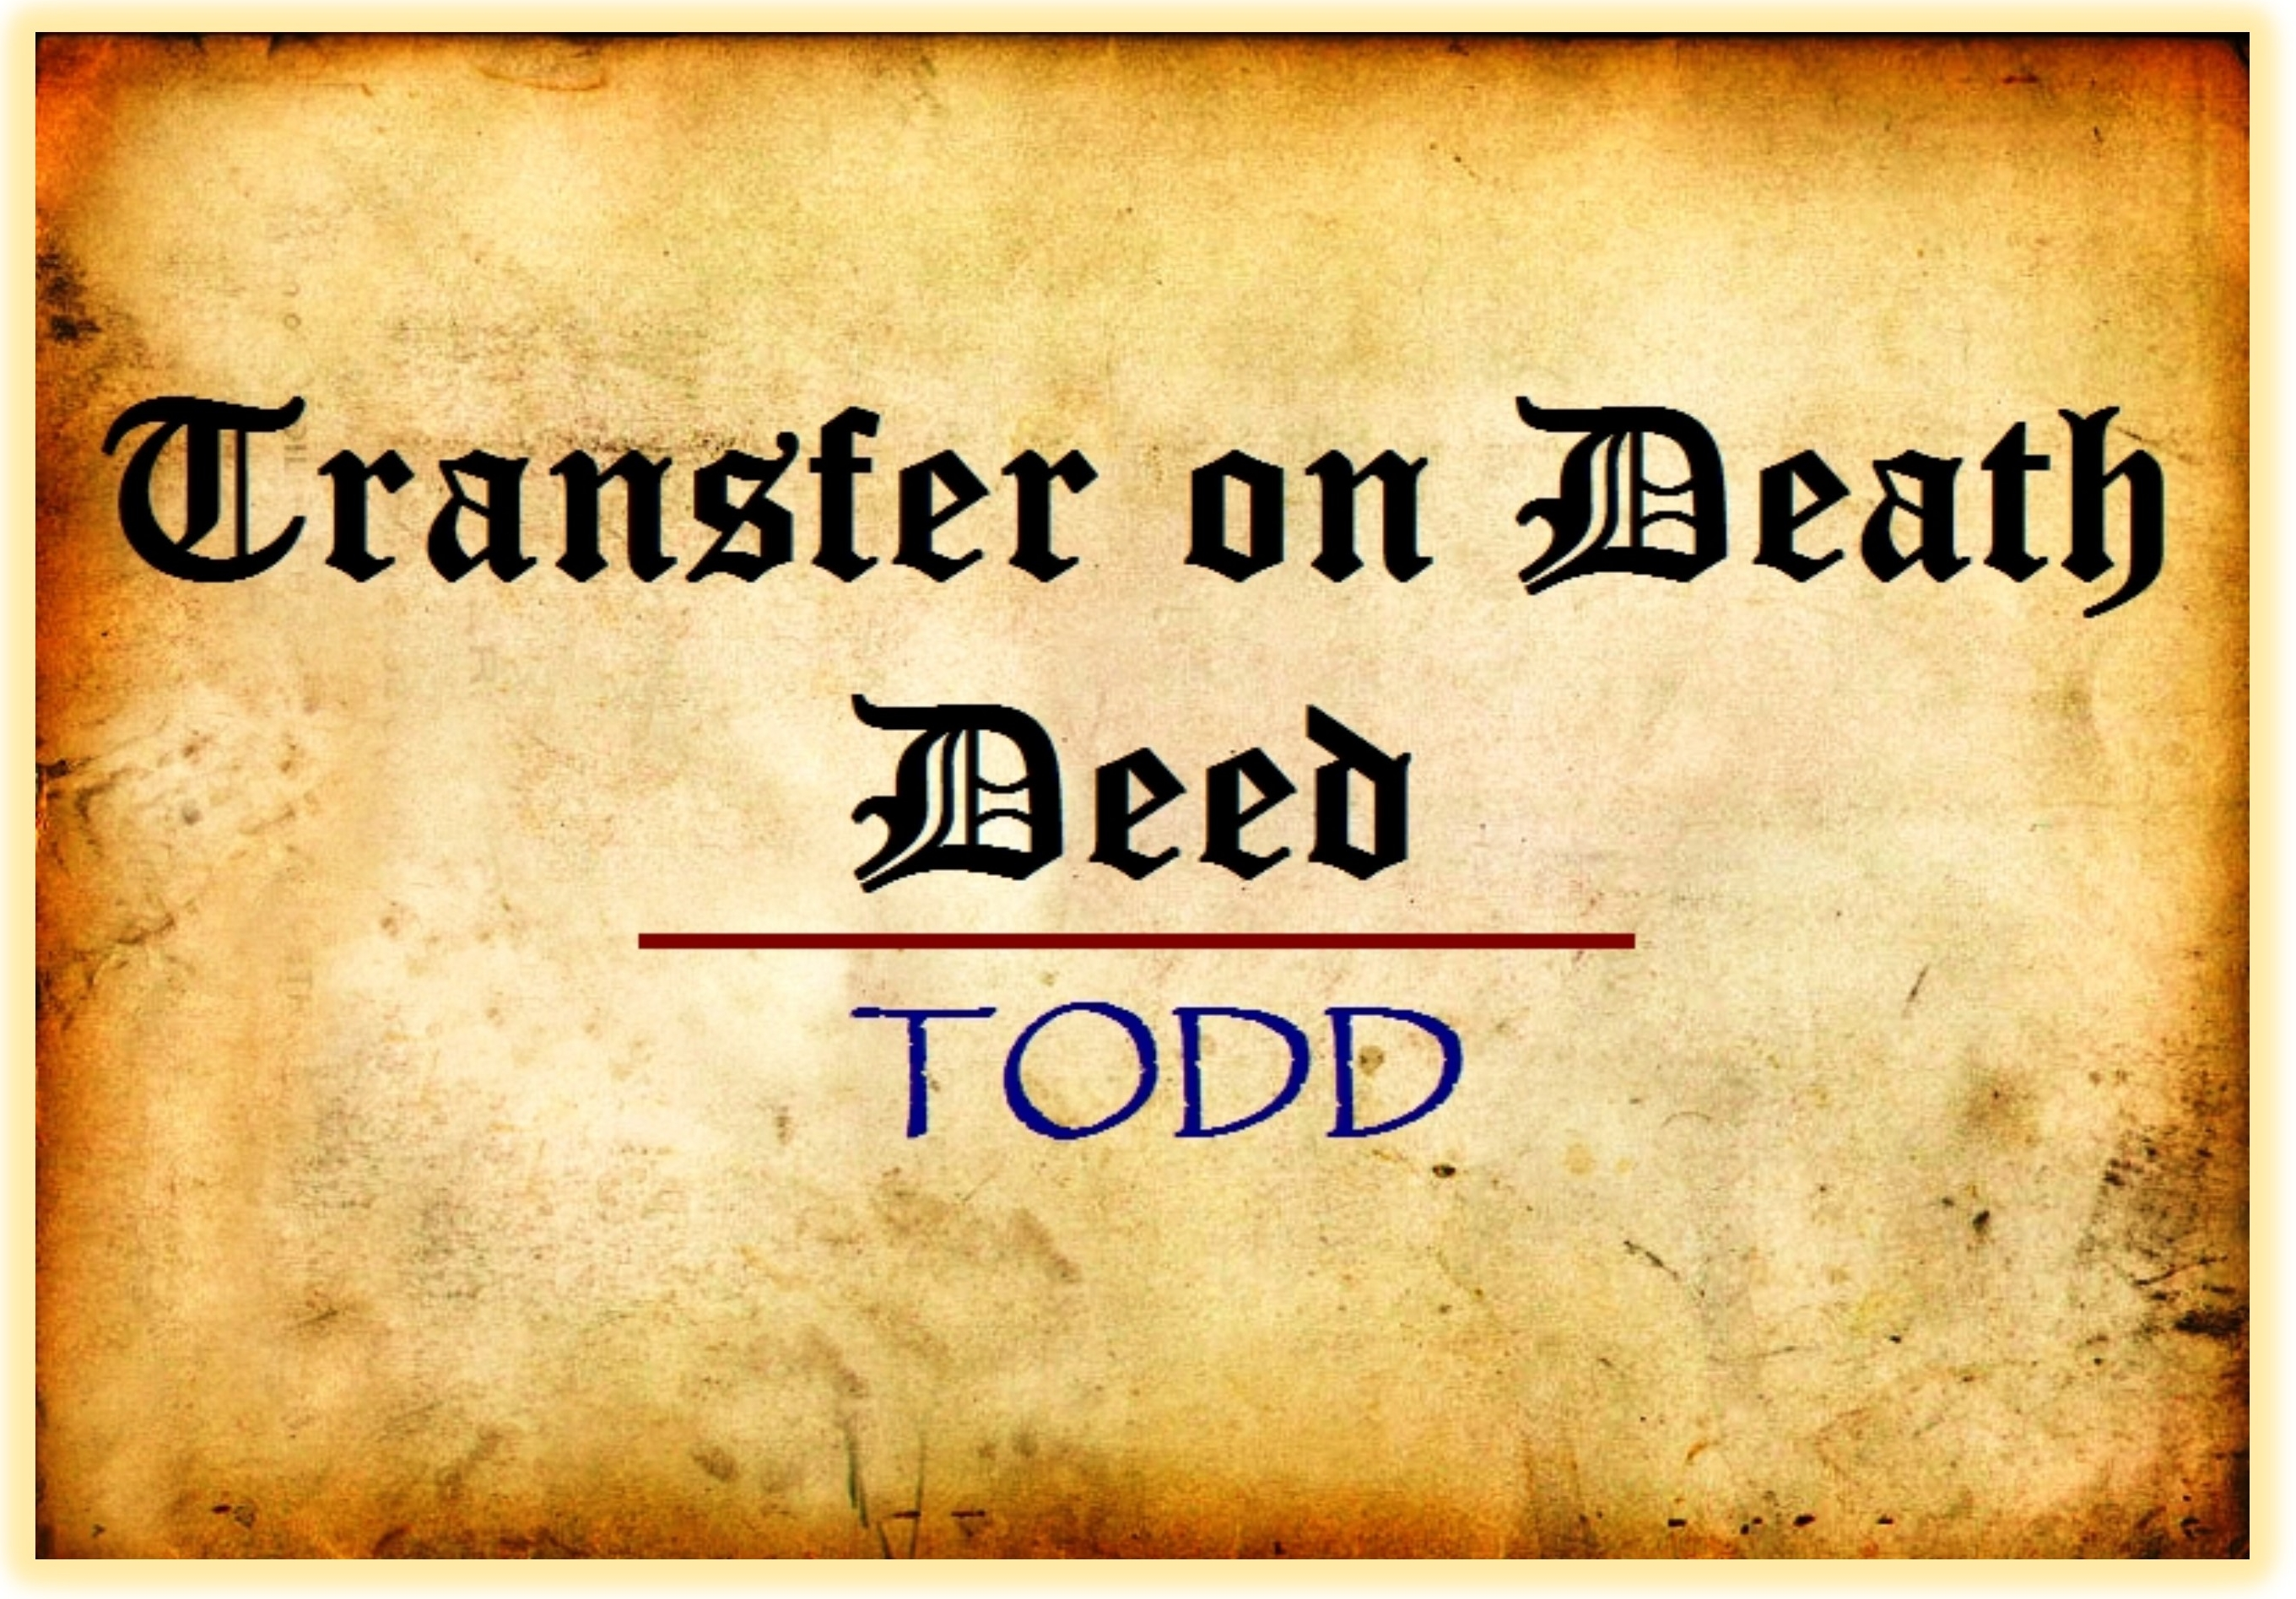 Transfer on Death Deed - Oscar Castillo: Broker Associate (858) 775-1057